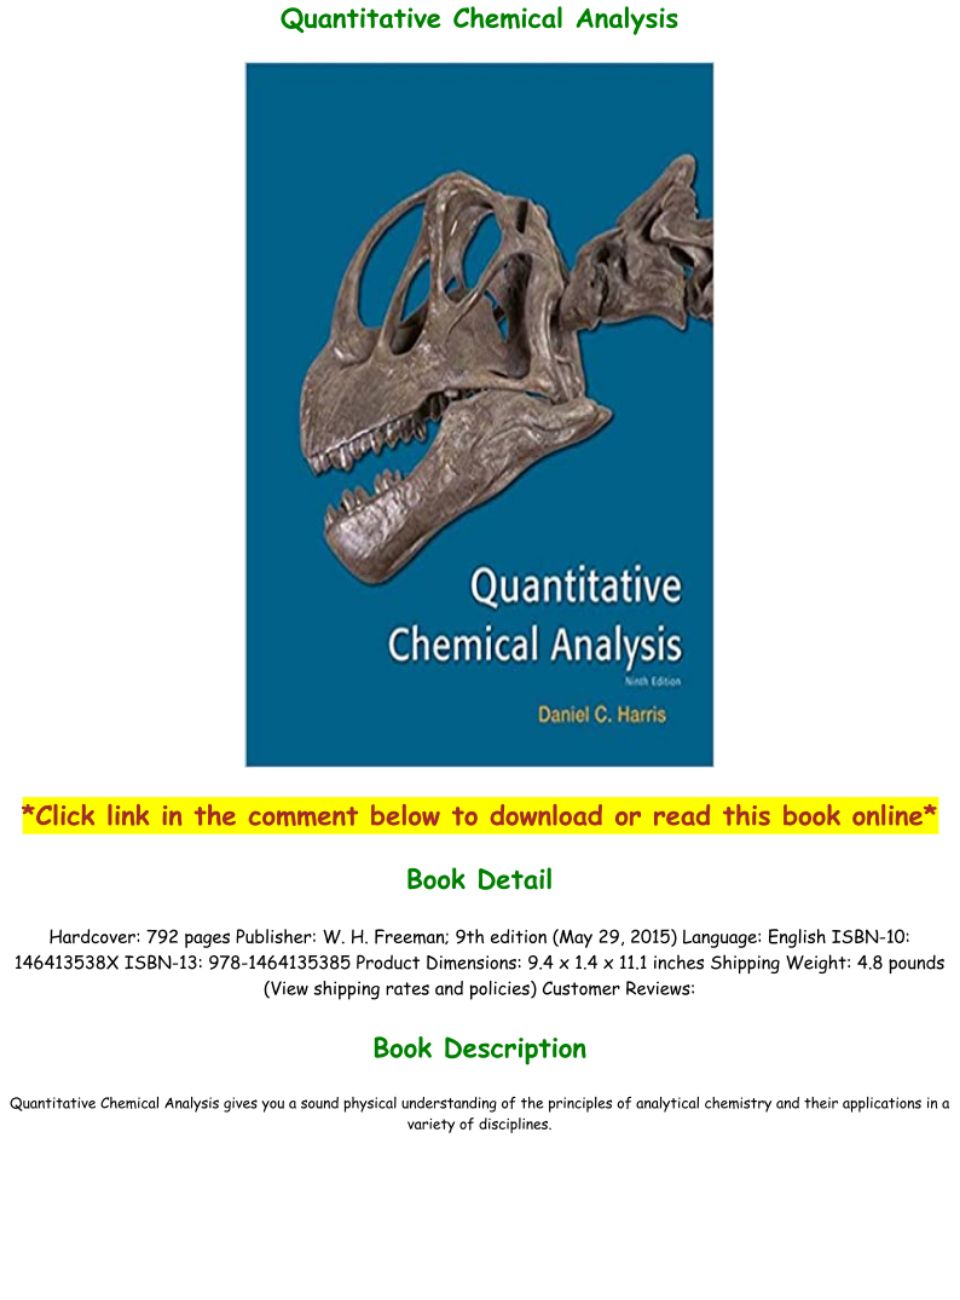 Quantitative Chemical Analysis 9th Edition Pdf Download